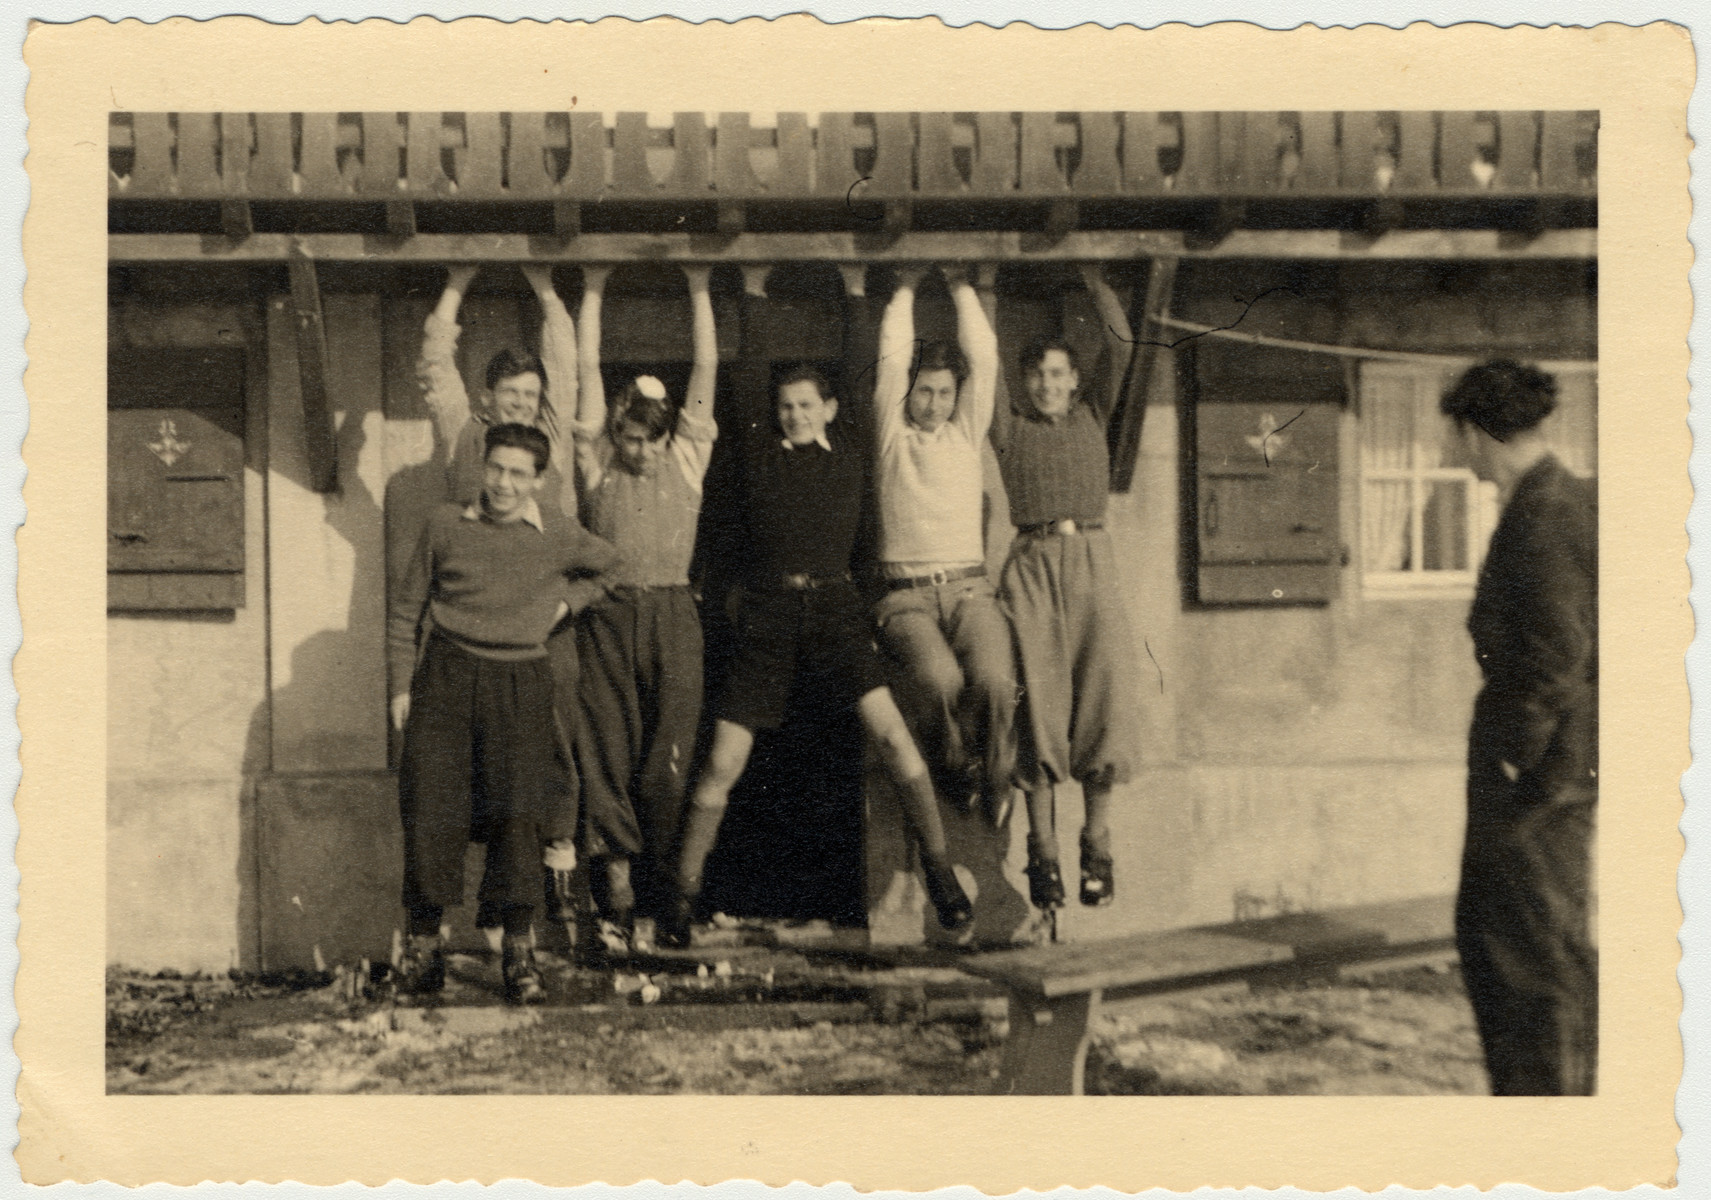 Members of Habonim from the Versoix and Les Murailles children's homes hang from the balcony of a chalet near Montreux where they had a winter camp.  Pictured from rom left to right  Theo Brenig, Ludwig Mayer, (both from Murailles)  Mouli , Max Wajsbrod (both Versoix), Kurt Heilbronner (today Uri Barnea) and Natan Alter (from Murailles).